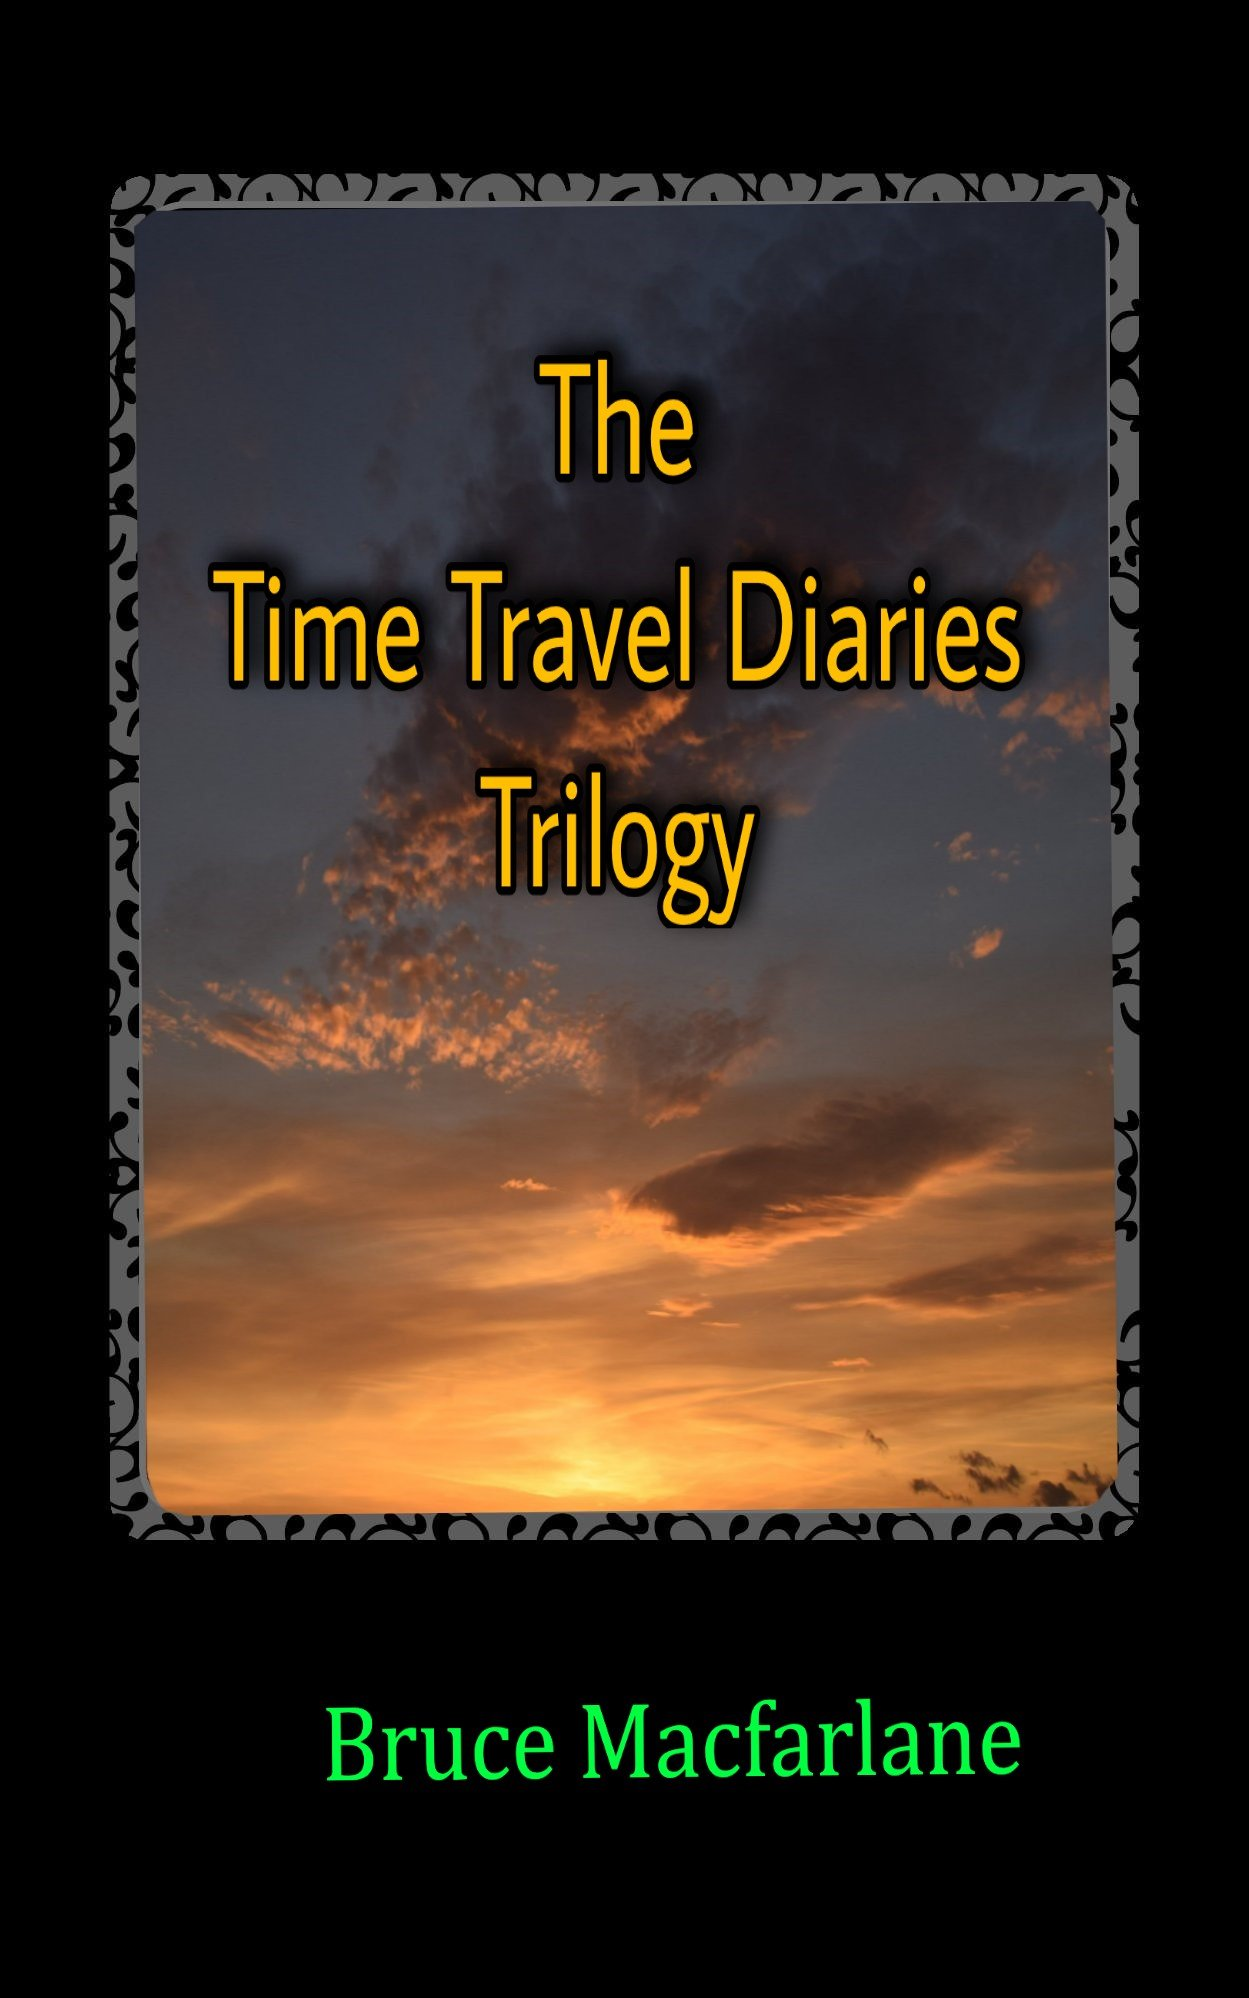 The Time Travel Diaries Trilogy